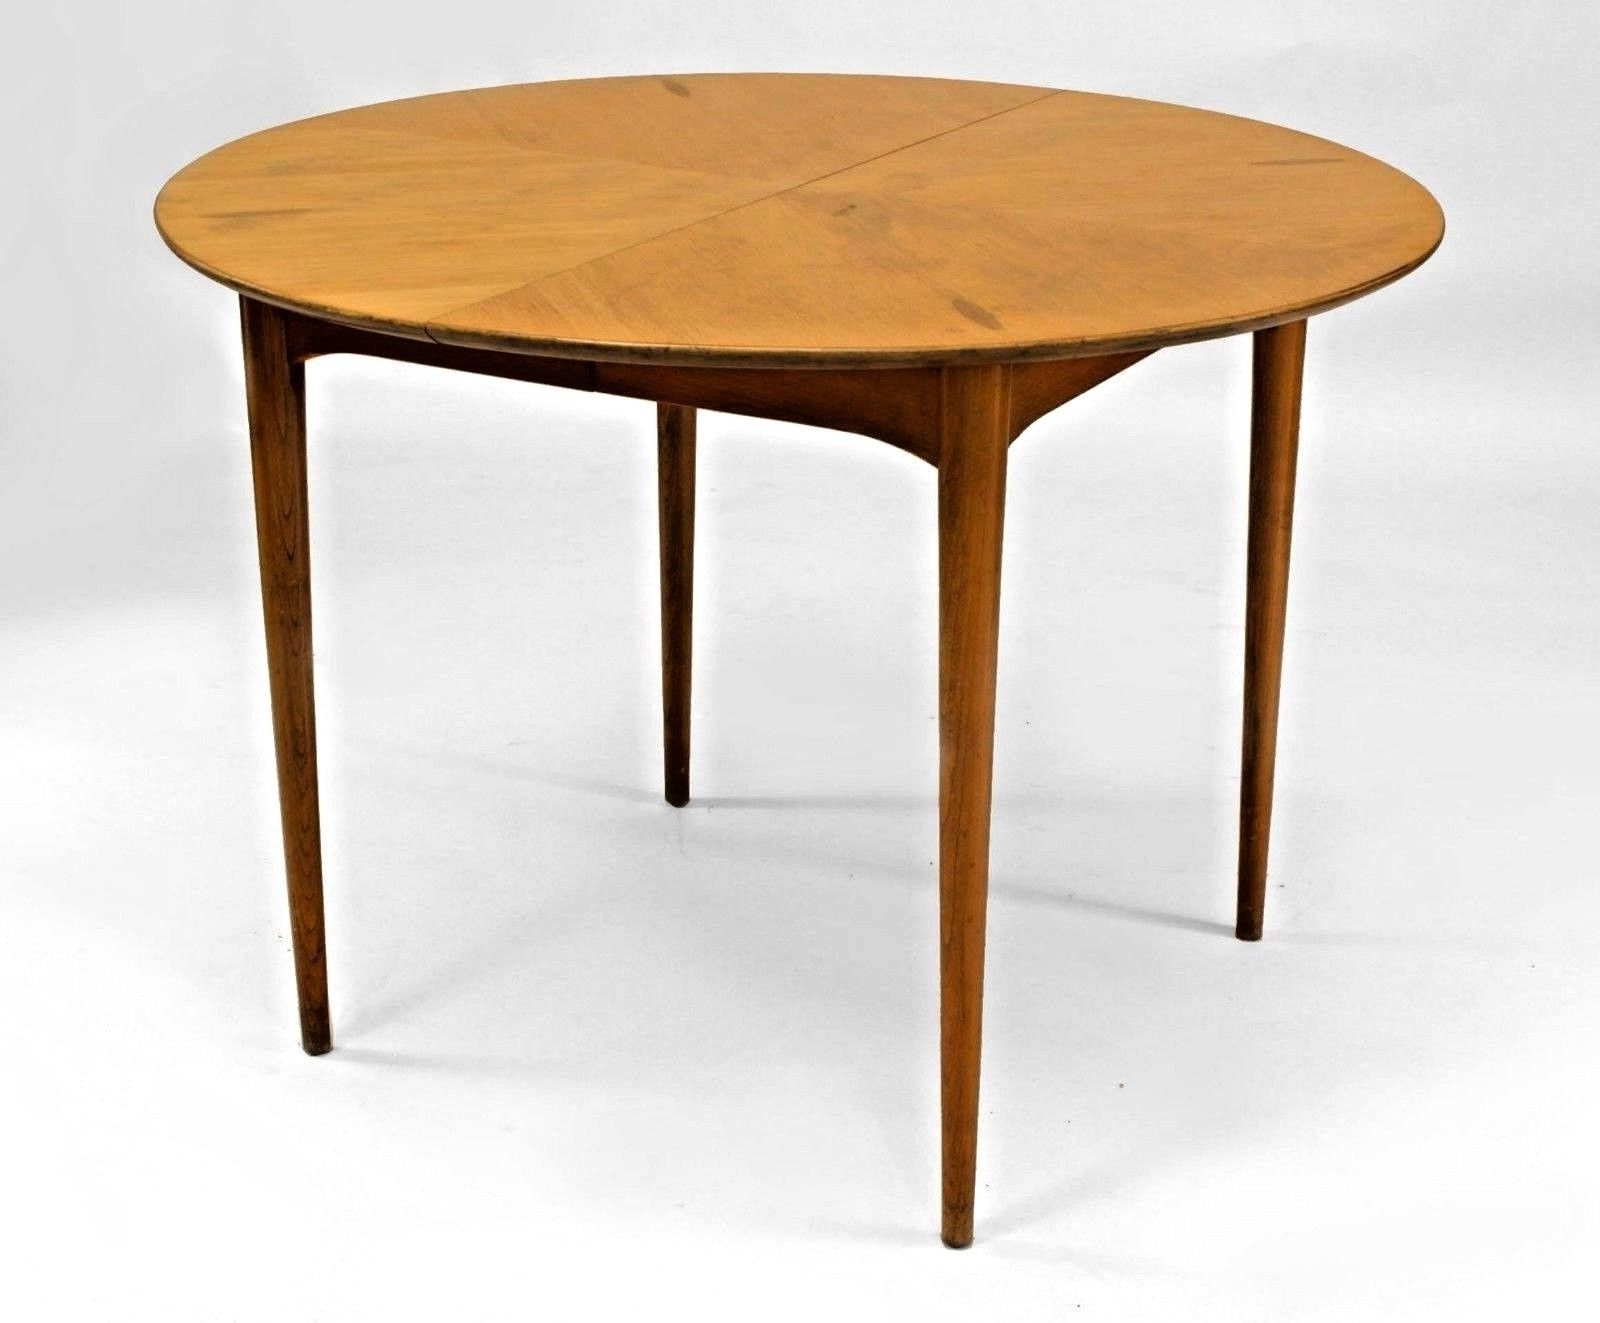 Well Liked Danish Style Dining Tables Within Post War Design (Danish Style)1950S Light Wood (Pecan) Round Dining (View 4 of 25)